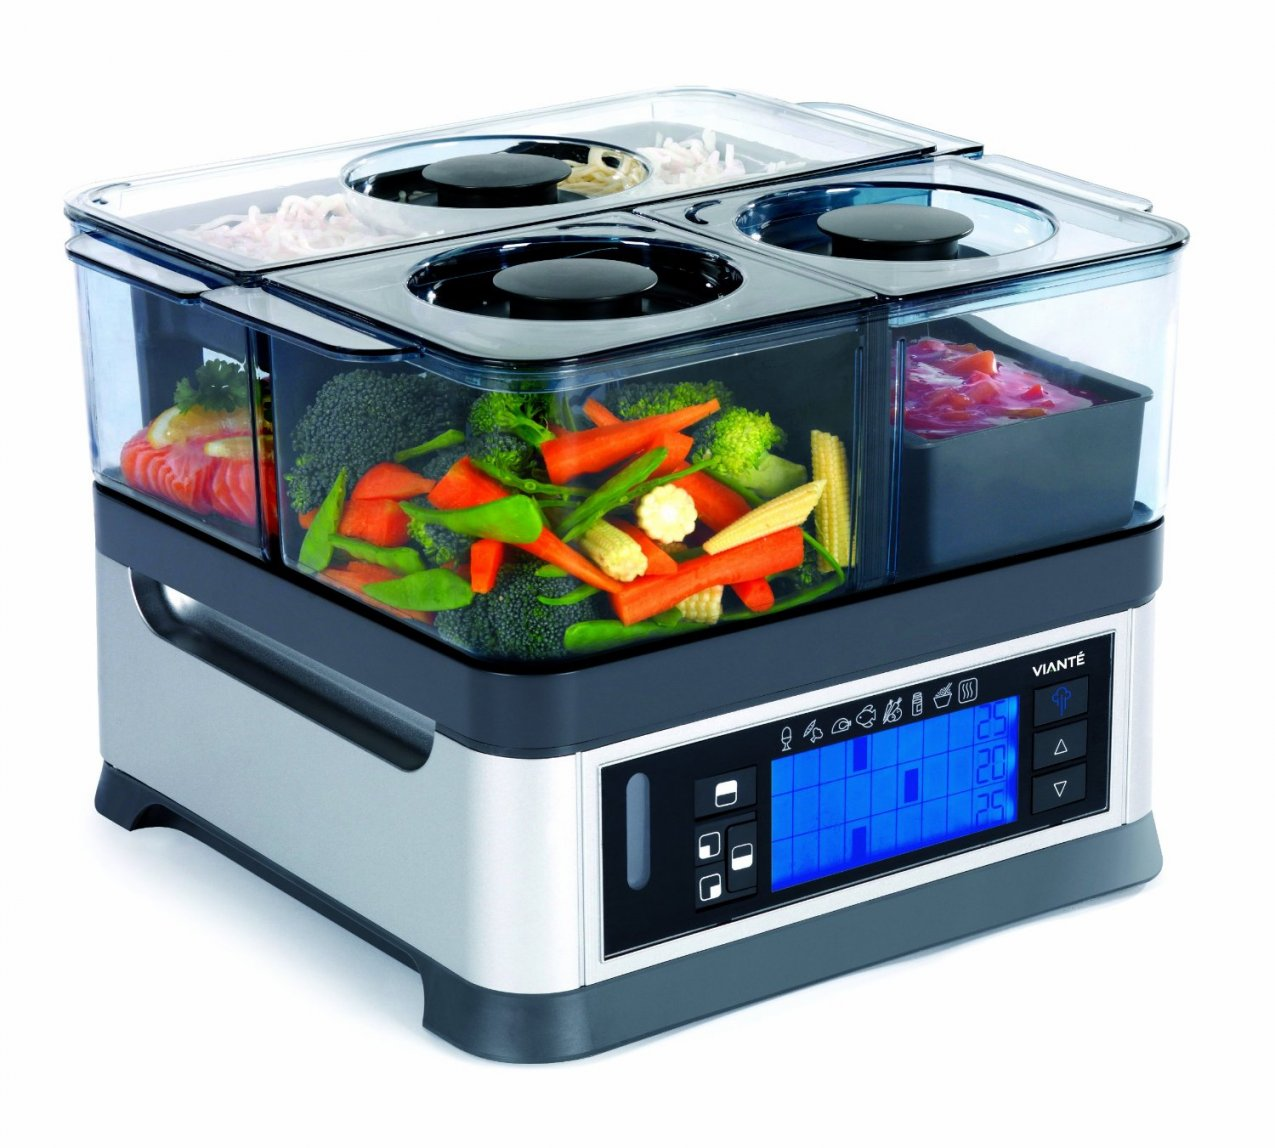 Best Rated Electric Vegetable Steamers - Kitchen Things